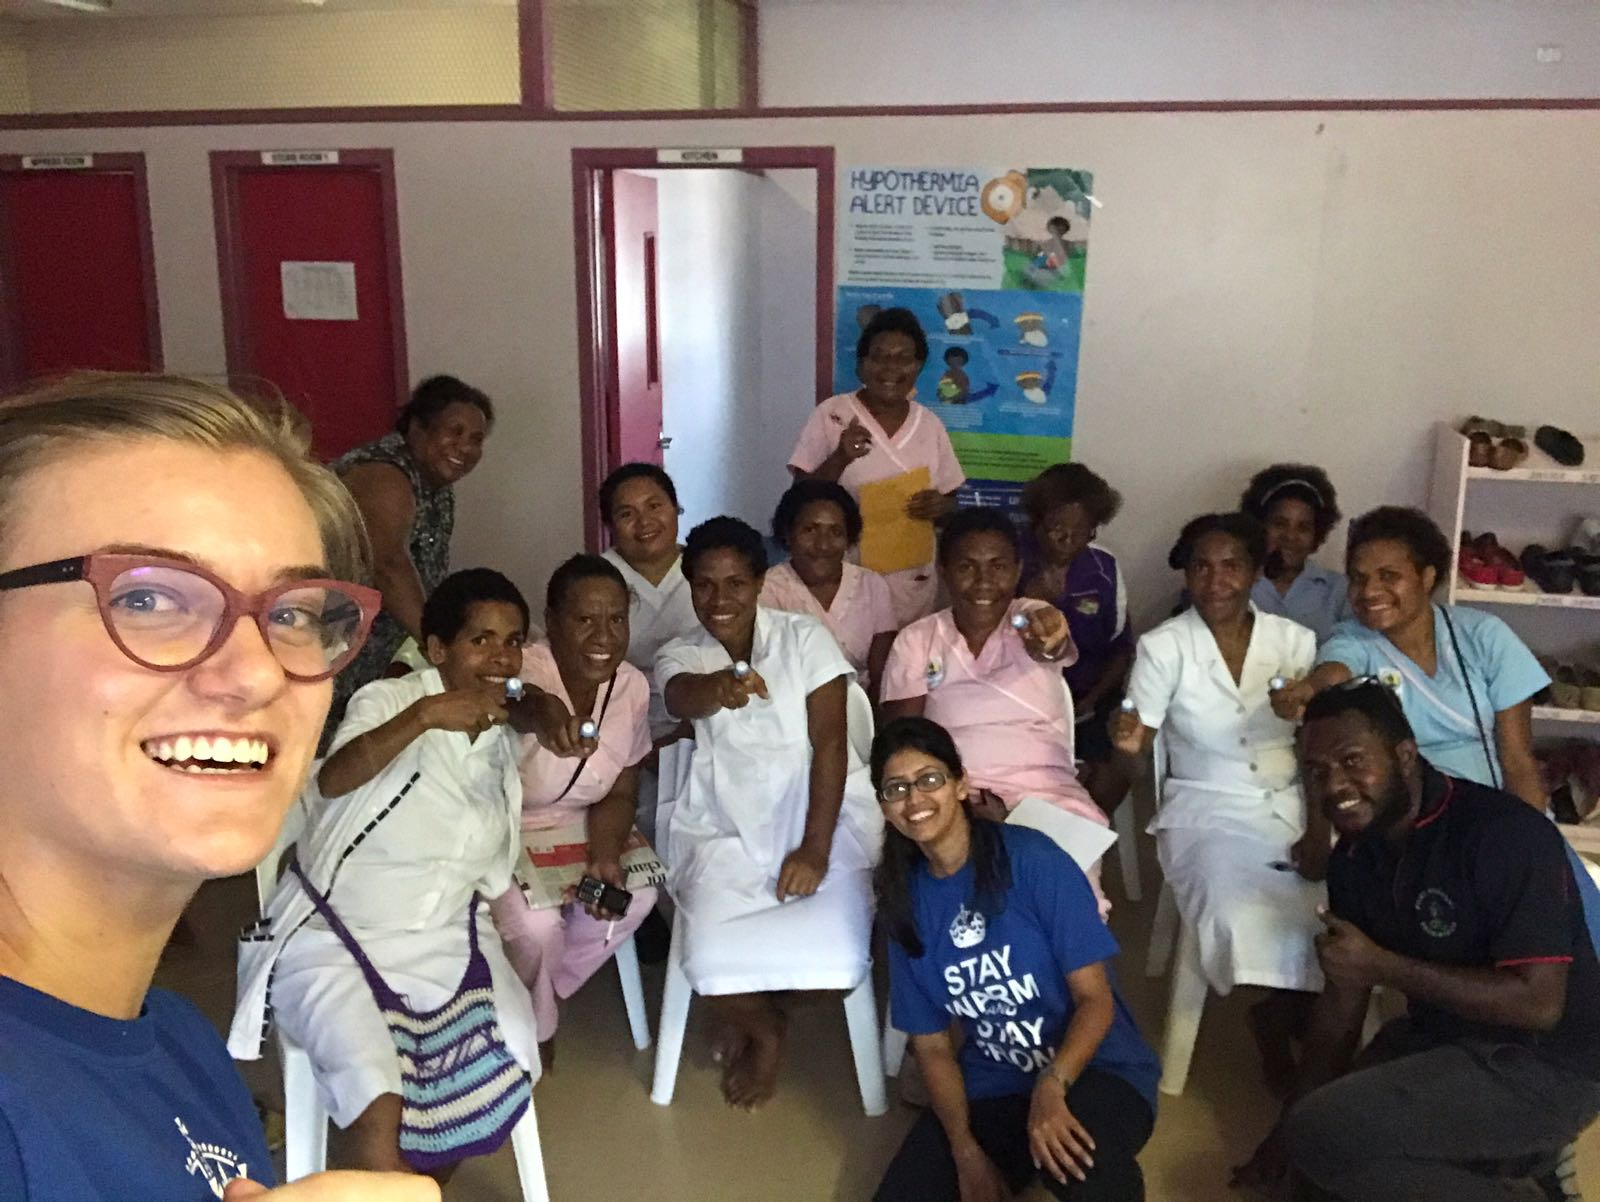 Annika Gage and Mona Sharma conducting a training session with nurses in Papua New Guinea.